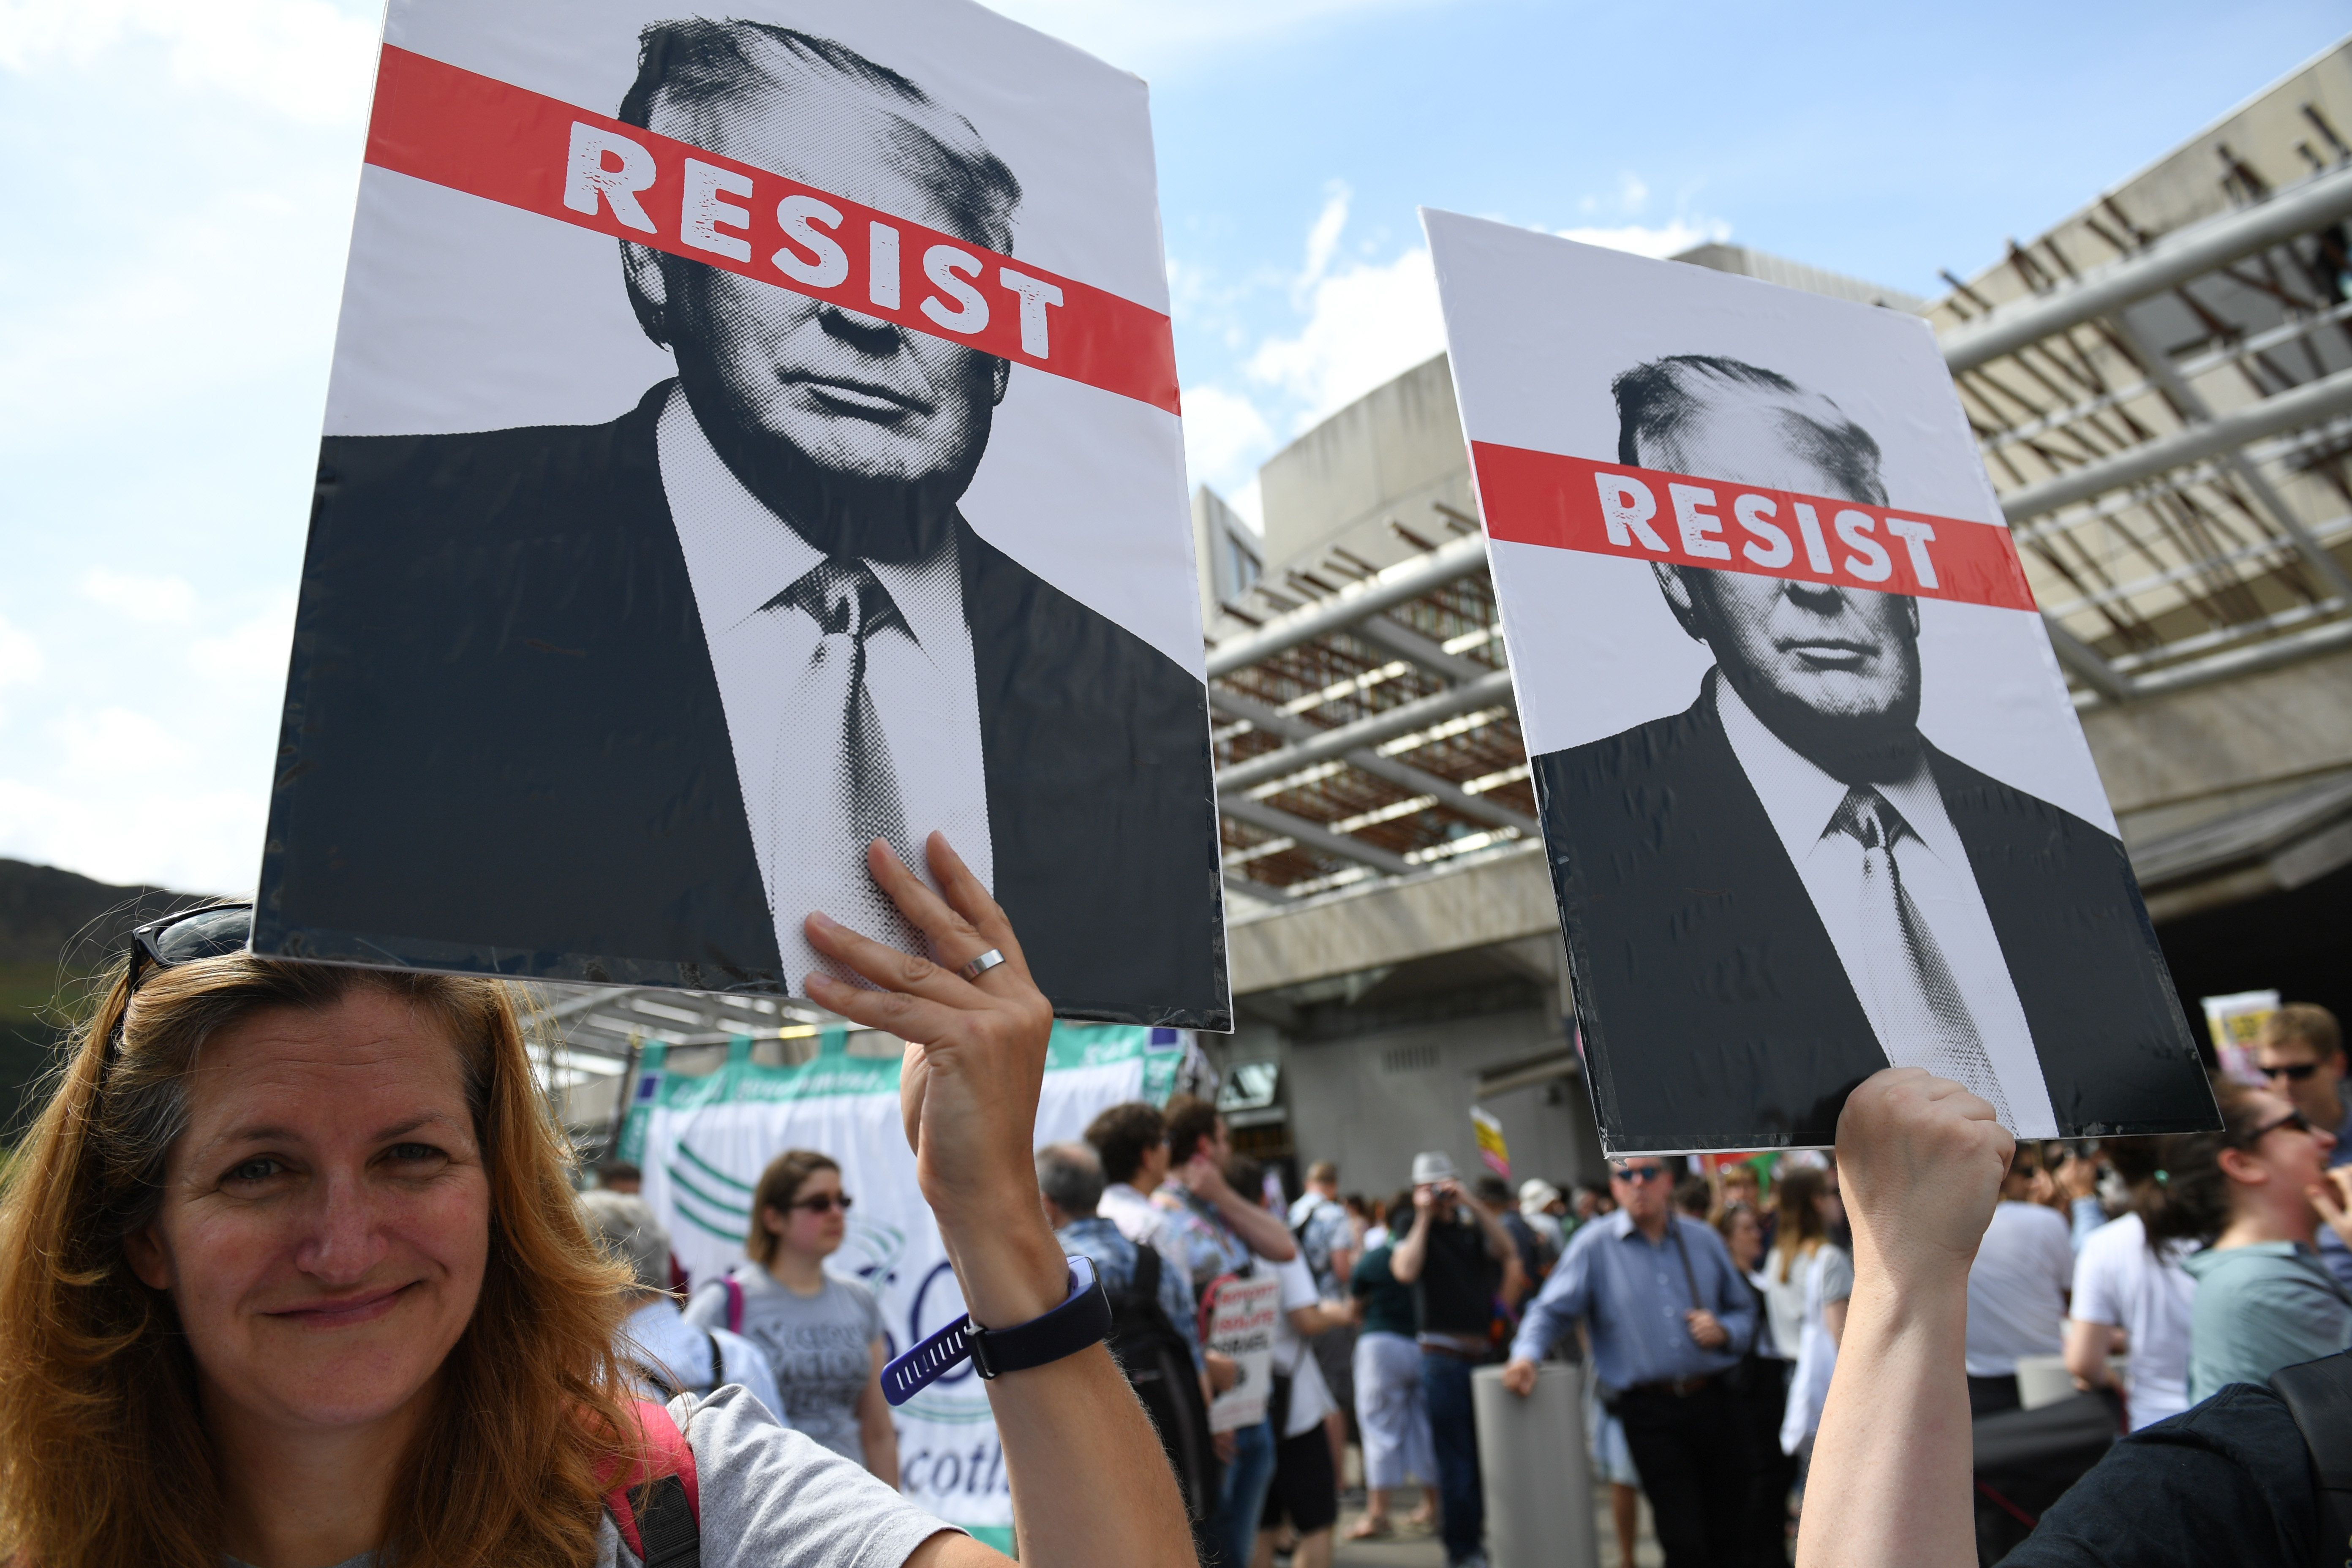 EDINBURGH, SCOTLAND - JULY 14:  People hold anti-Trump signs while the U.S. President is visiting Trump Turnberry Luxury Collection Resort in Scotland as people gather to protest during his visit to the United Kingdom on July 14, 2018 in Edinburgh, Scotland. The President of the United States and First Lady, Melania Trump on their first official visit to the UK after yesterday's meetings with the Prime Minister and the Queen is in Scotland for private weekend stay at his Turnberry.  (Photo by Jeff J Mitchell/Getty Images)